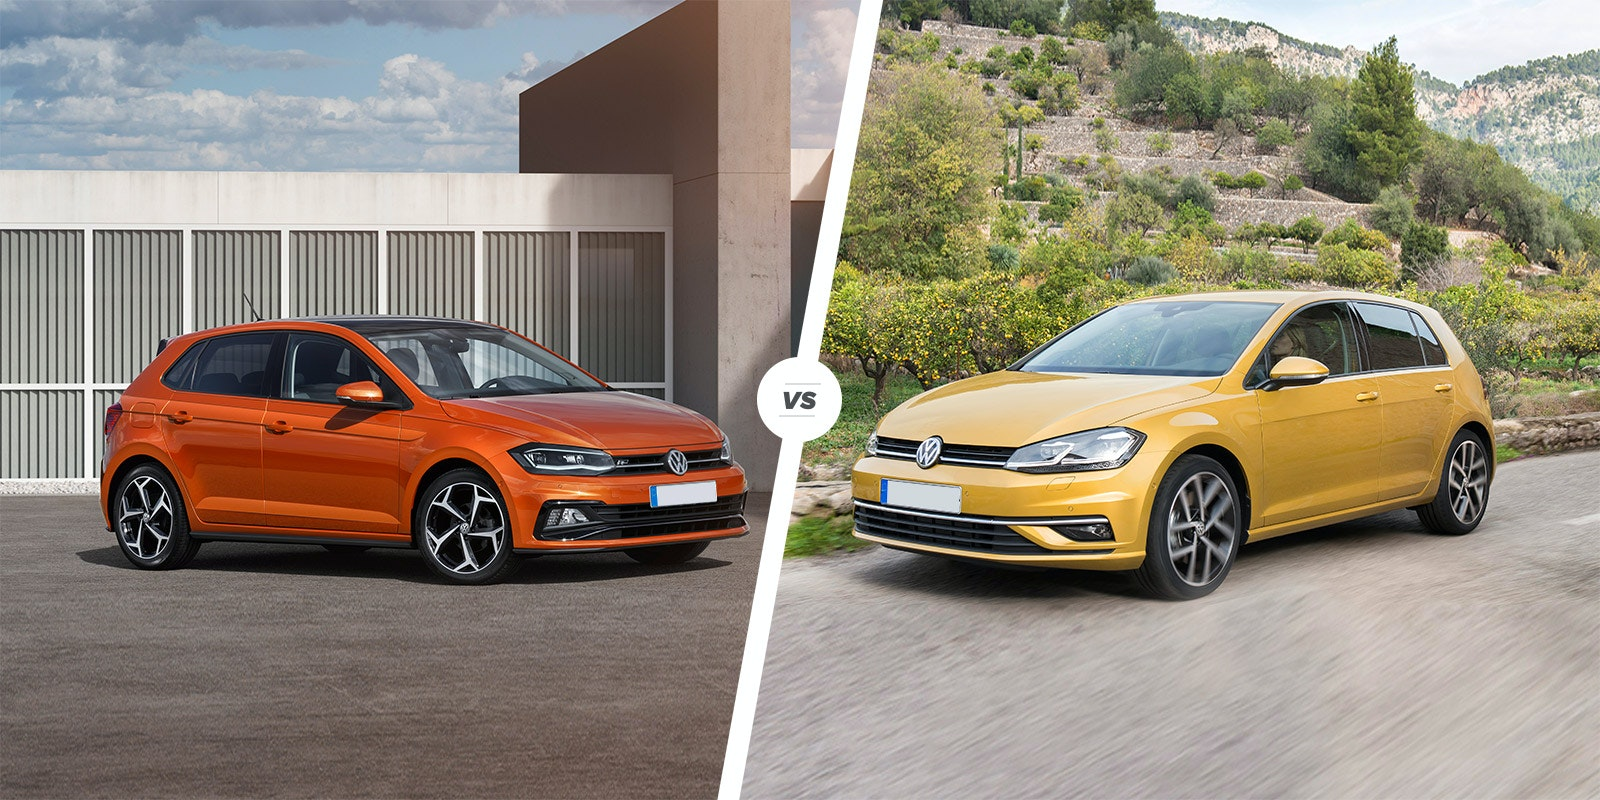 Carwow vw polo vs vw golf lead.jpg?ixlib=rb 1.1